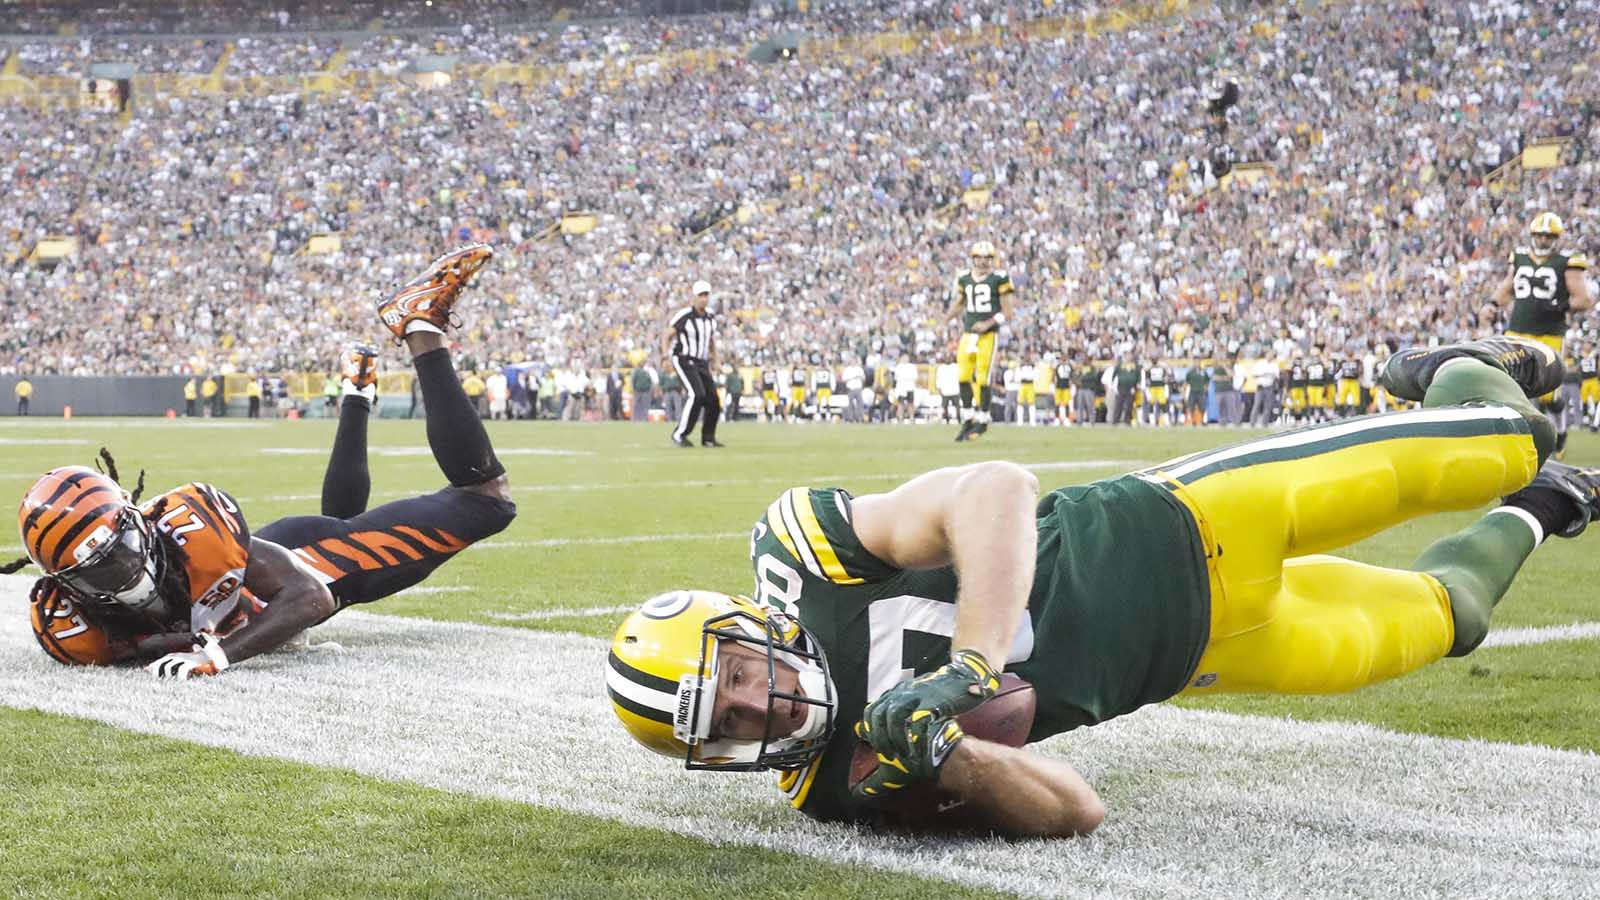 Green Bay Packers' Jordy Nelson catches a touchdown pass in front of Cincinnati Bengals' Dre Kirkpatrick during the second half of an NFL football game Sunday, Sept. 24, 2017, in Green Bay, Wis. (AP Photo/Morry Gash)